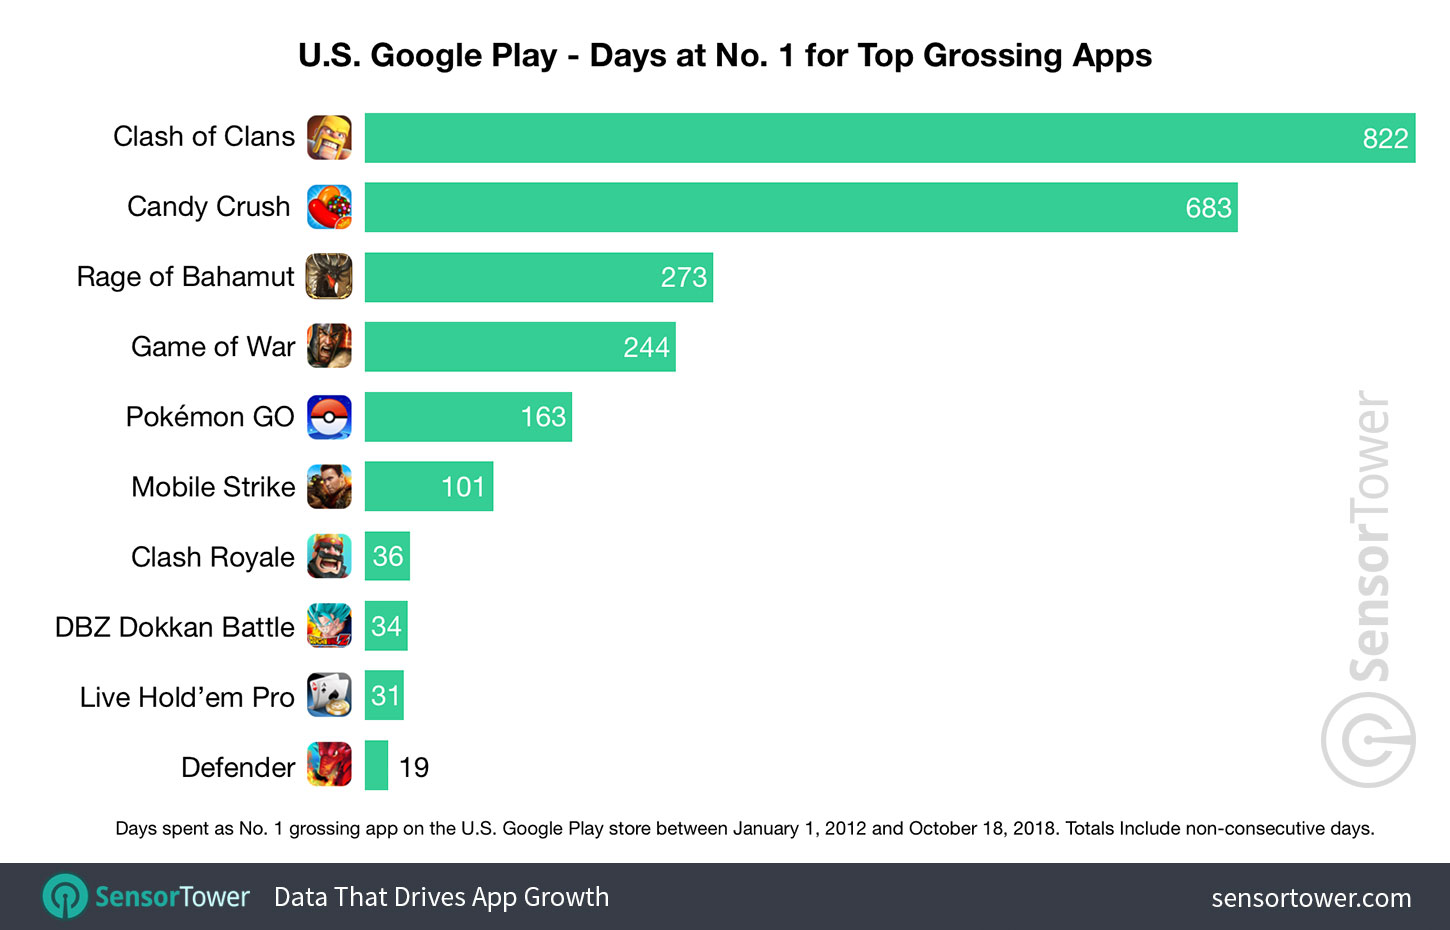 These Apps and Games Have Spent the Most Time at No. 1 on Google Play